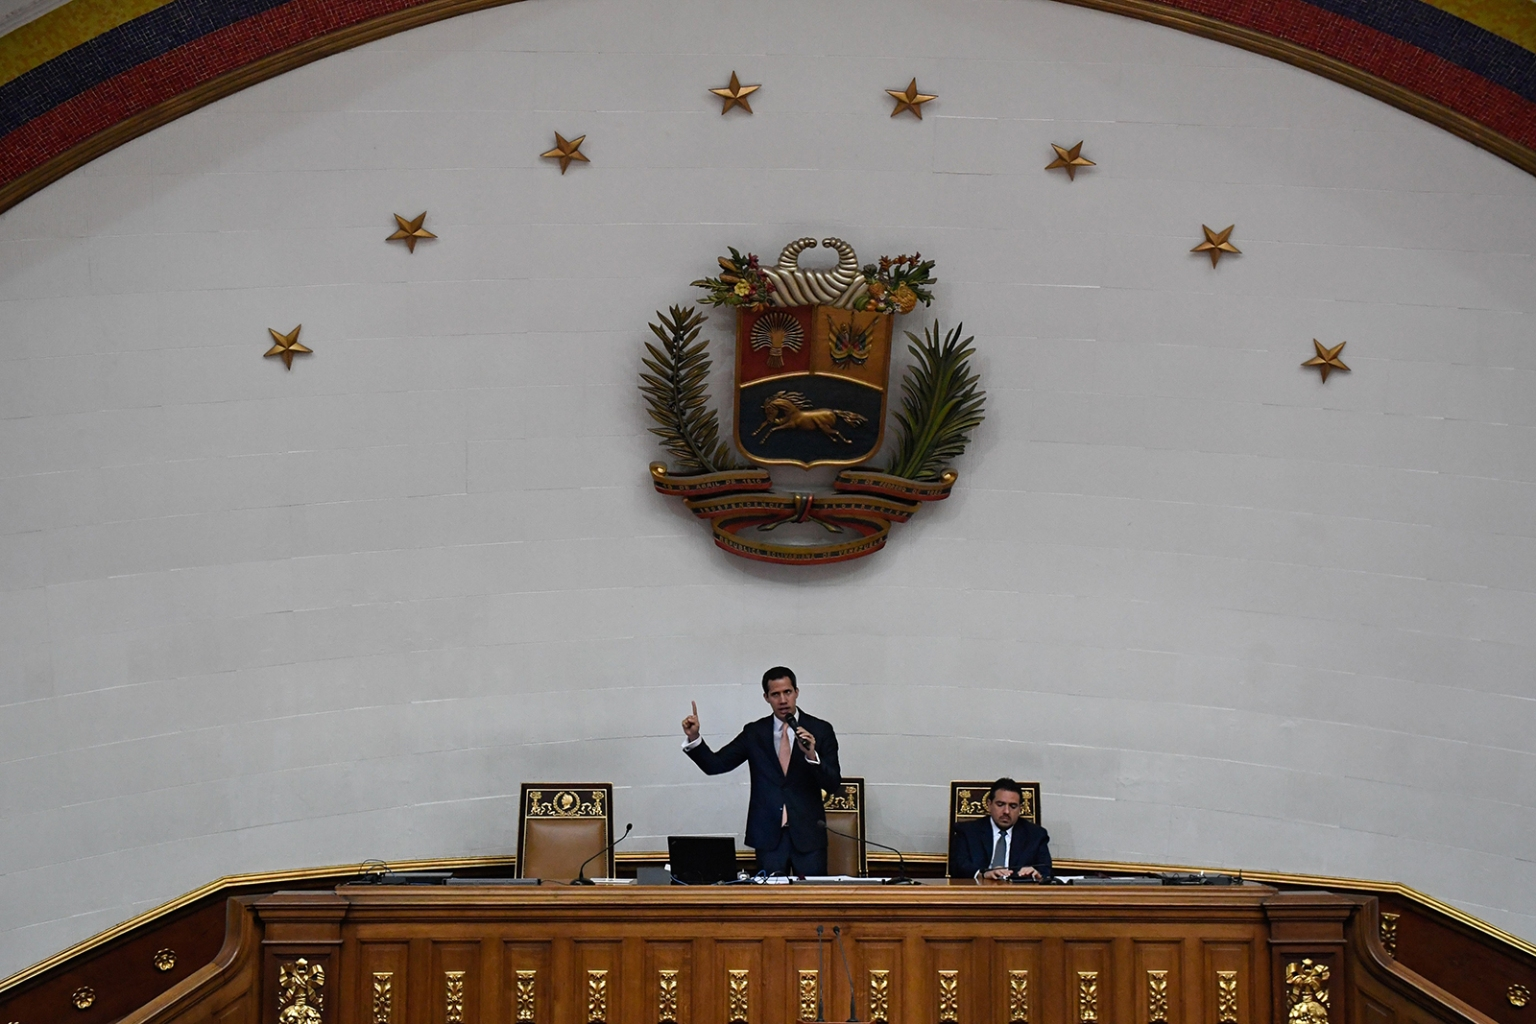 Venezuelan opposition leader and self-proclaimed interim president Juan Guaido speaks during a session of the National Assembly in Caracas on June 25. FEDERICO PARRA/AFP/Getty Images